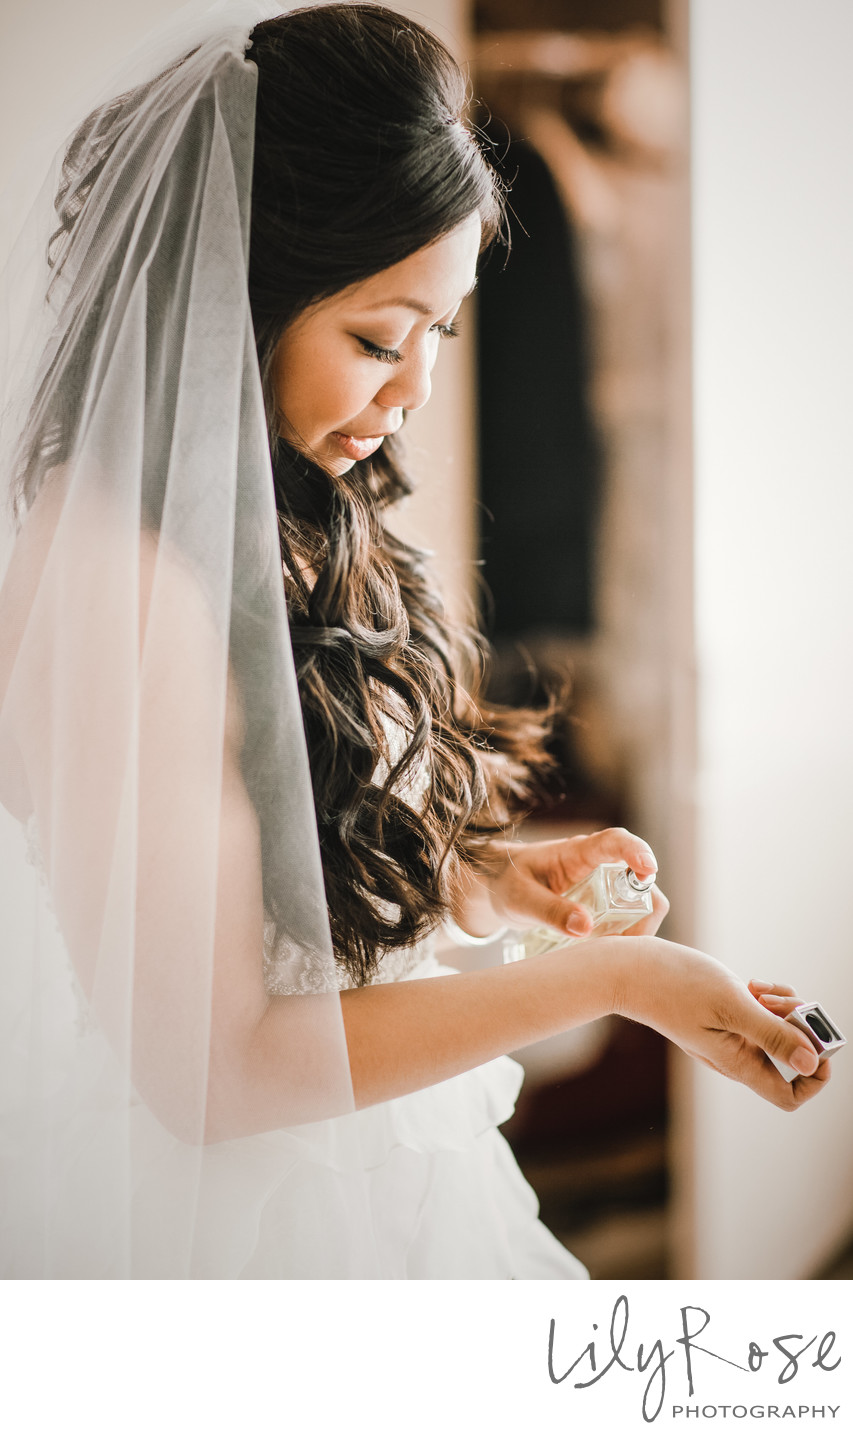 Top Wedding Photographers in San Francisco